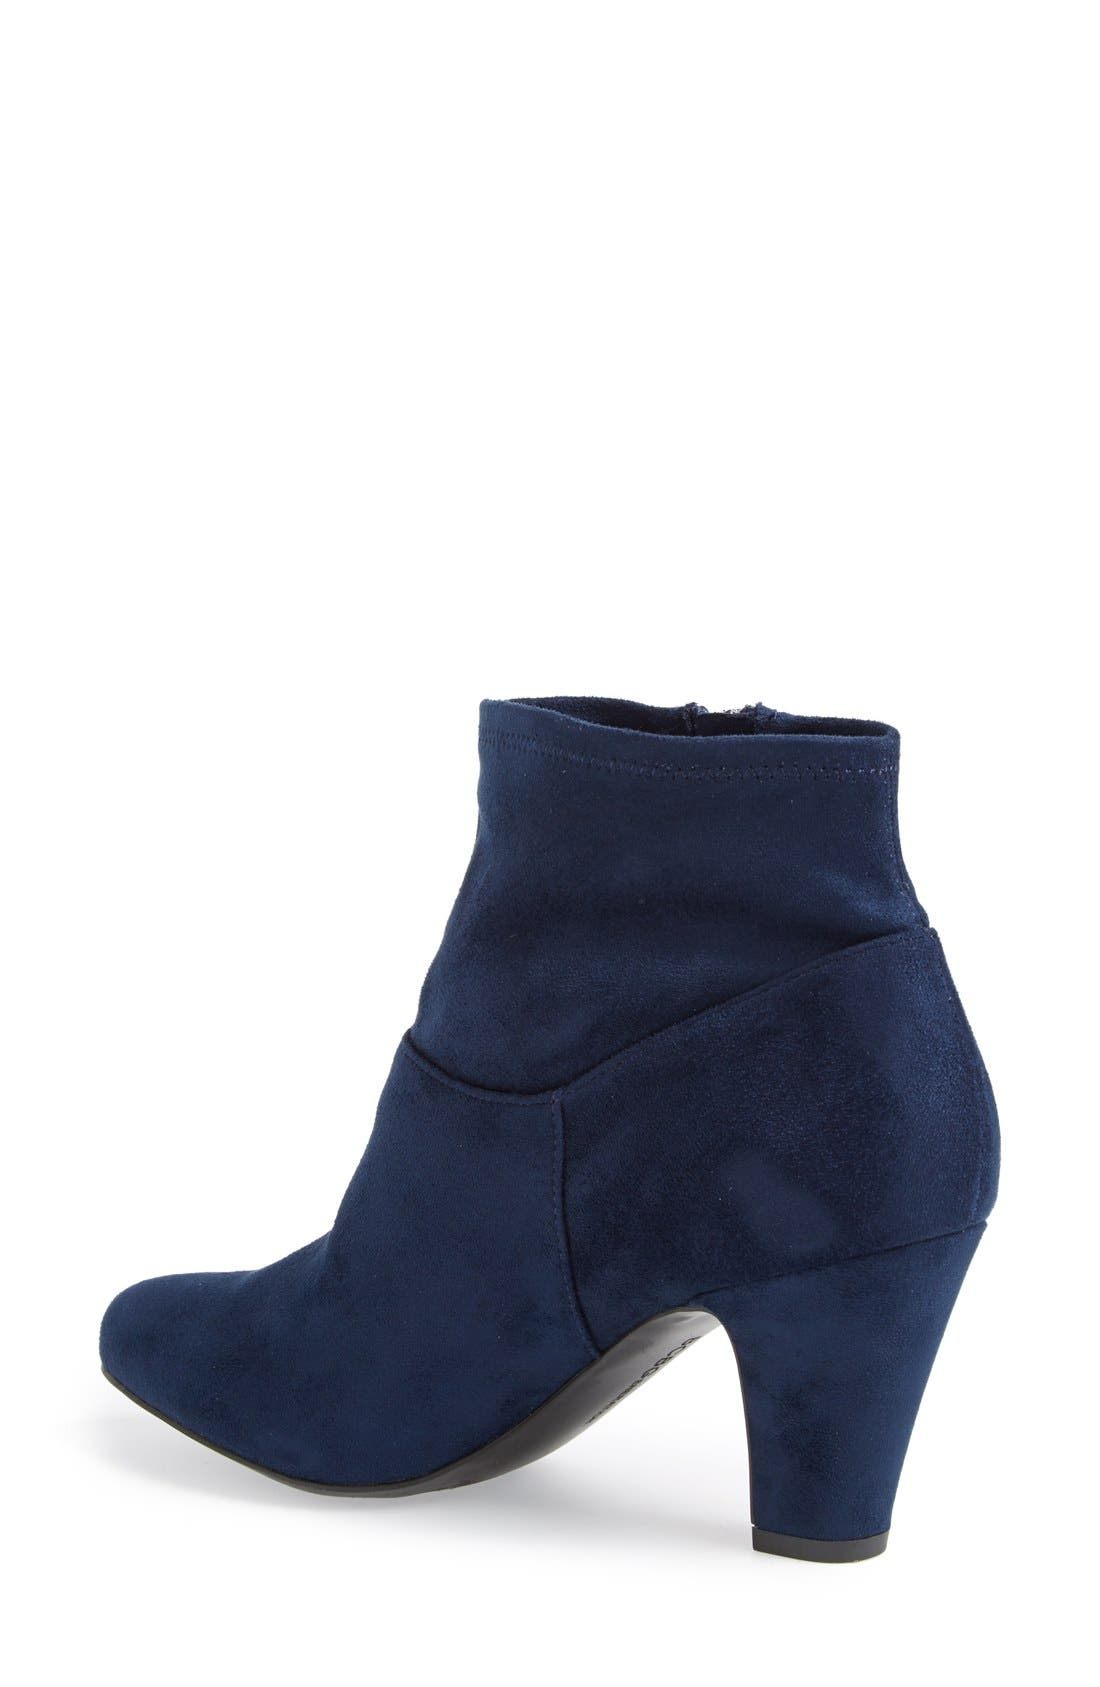 Alternate Image 2  - BCBGeneration 'Datto' Bootie (Women)